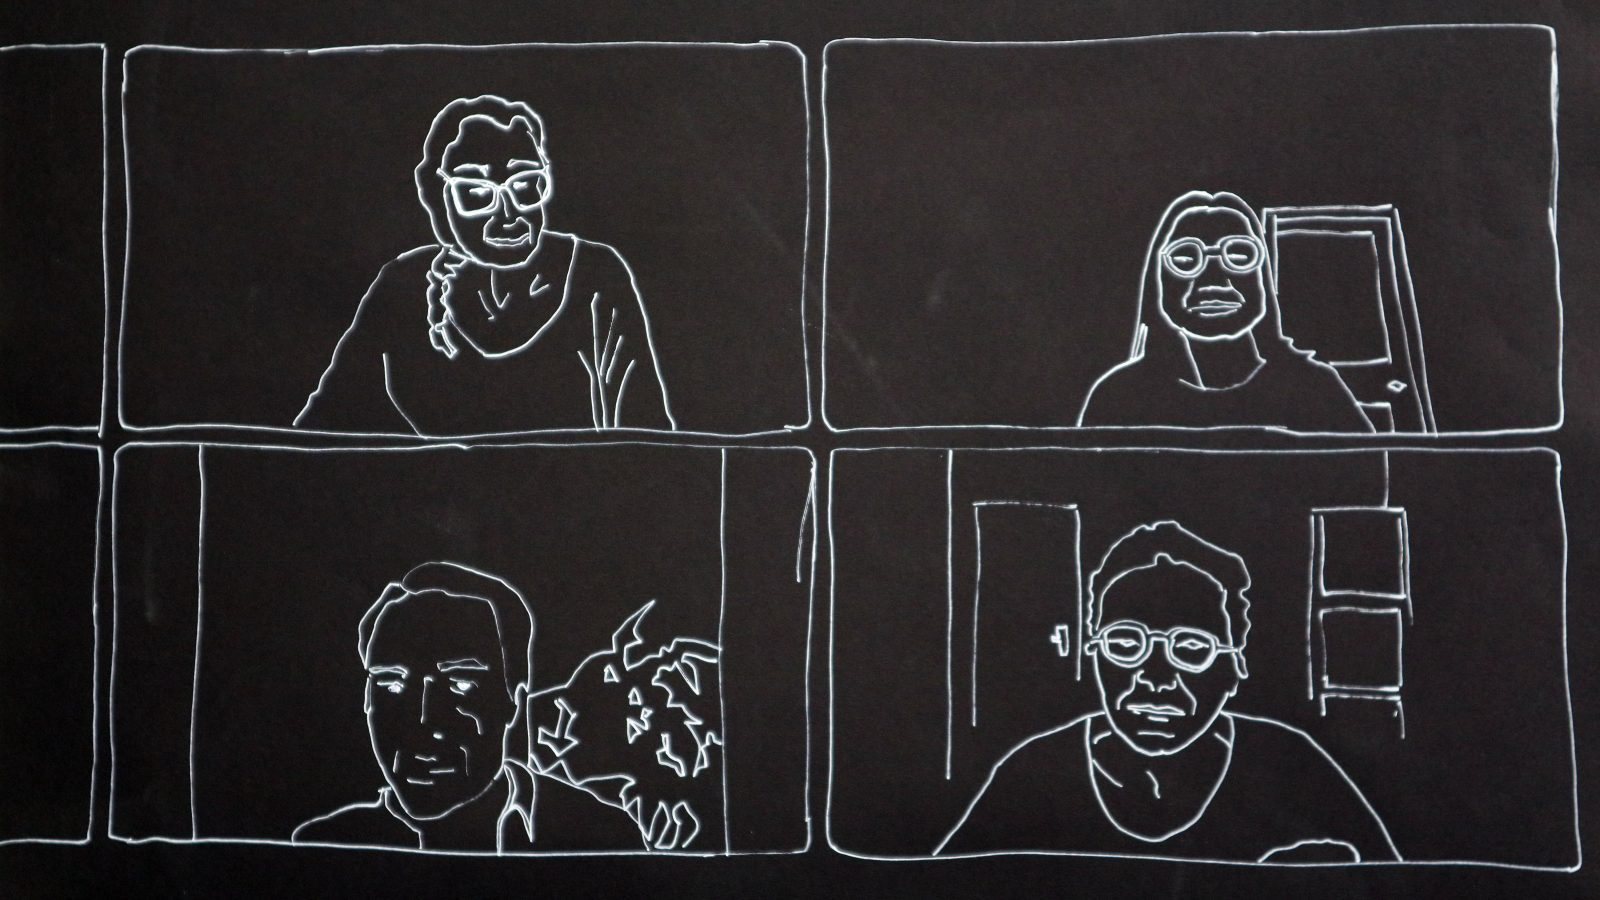 4 white line drawings on a black background of people's head and shoulder in a rectangle.